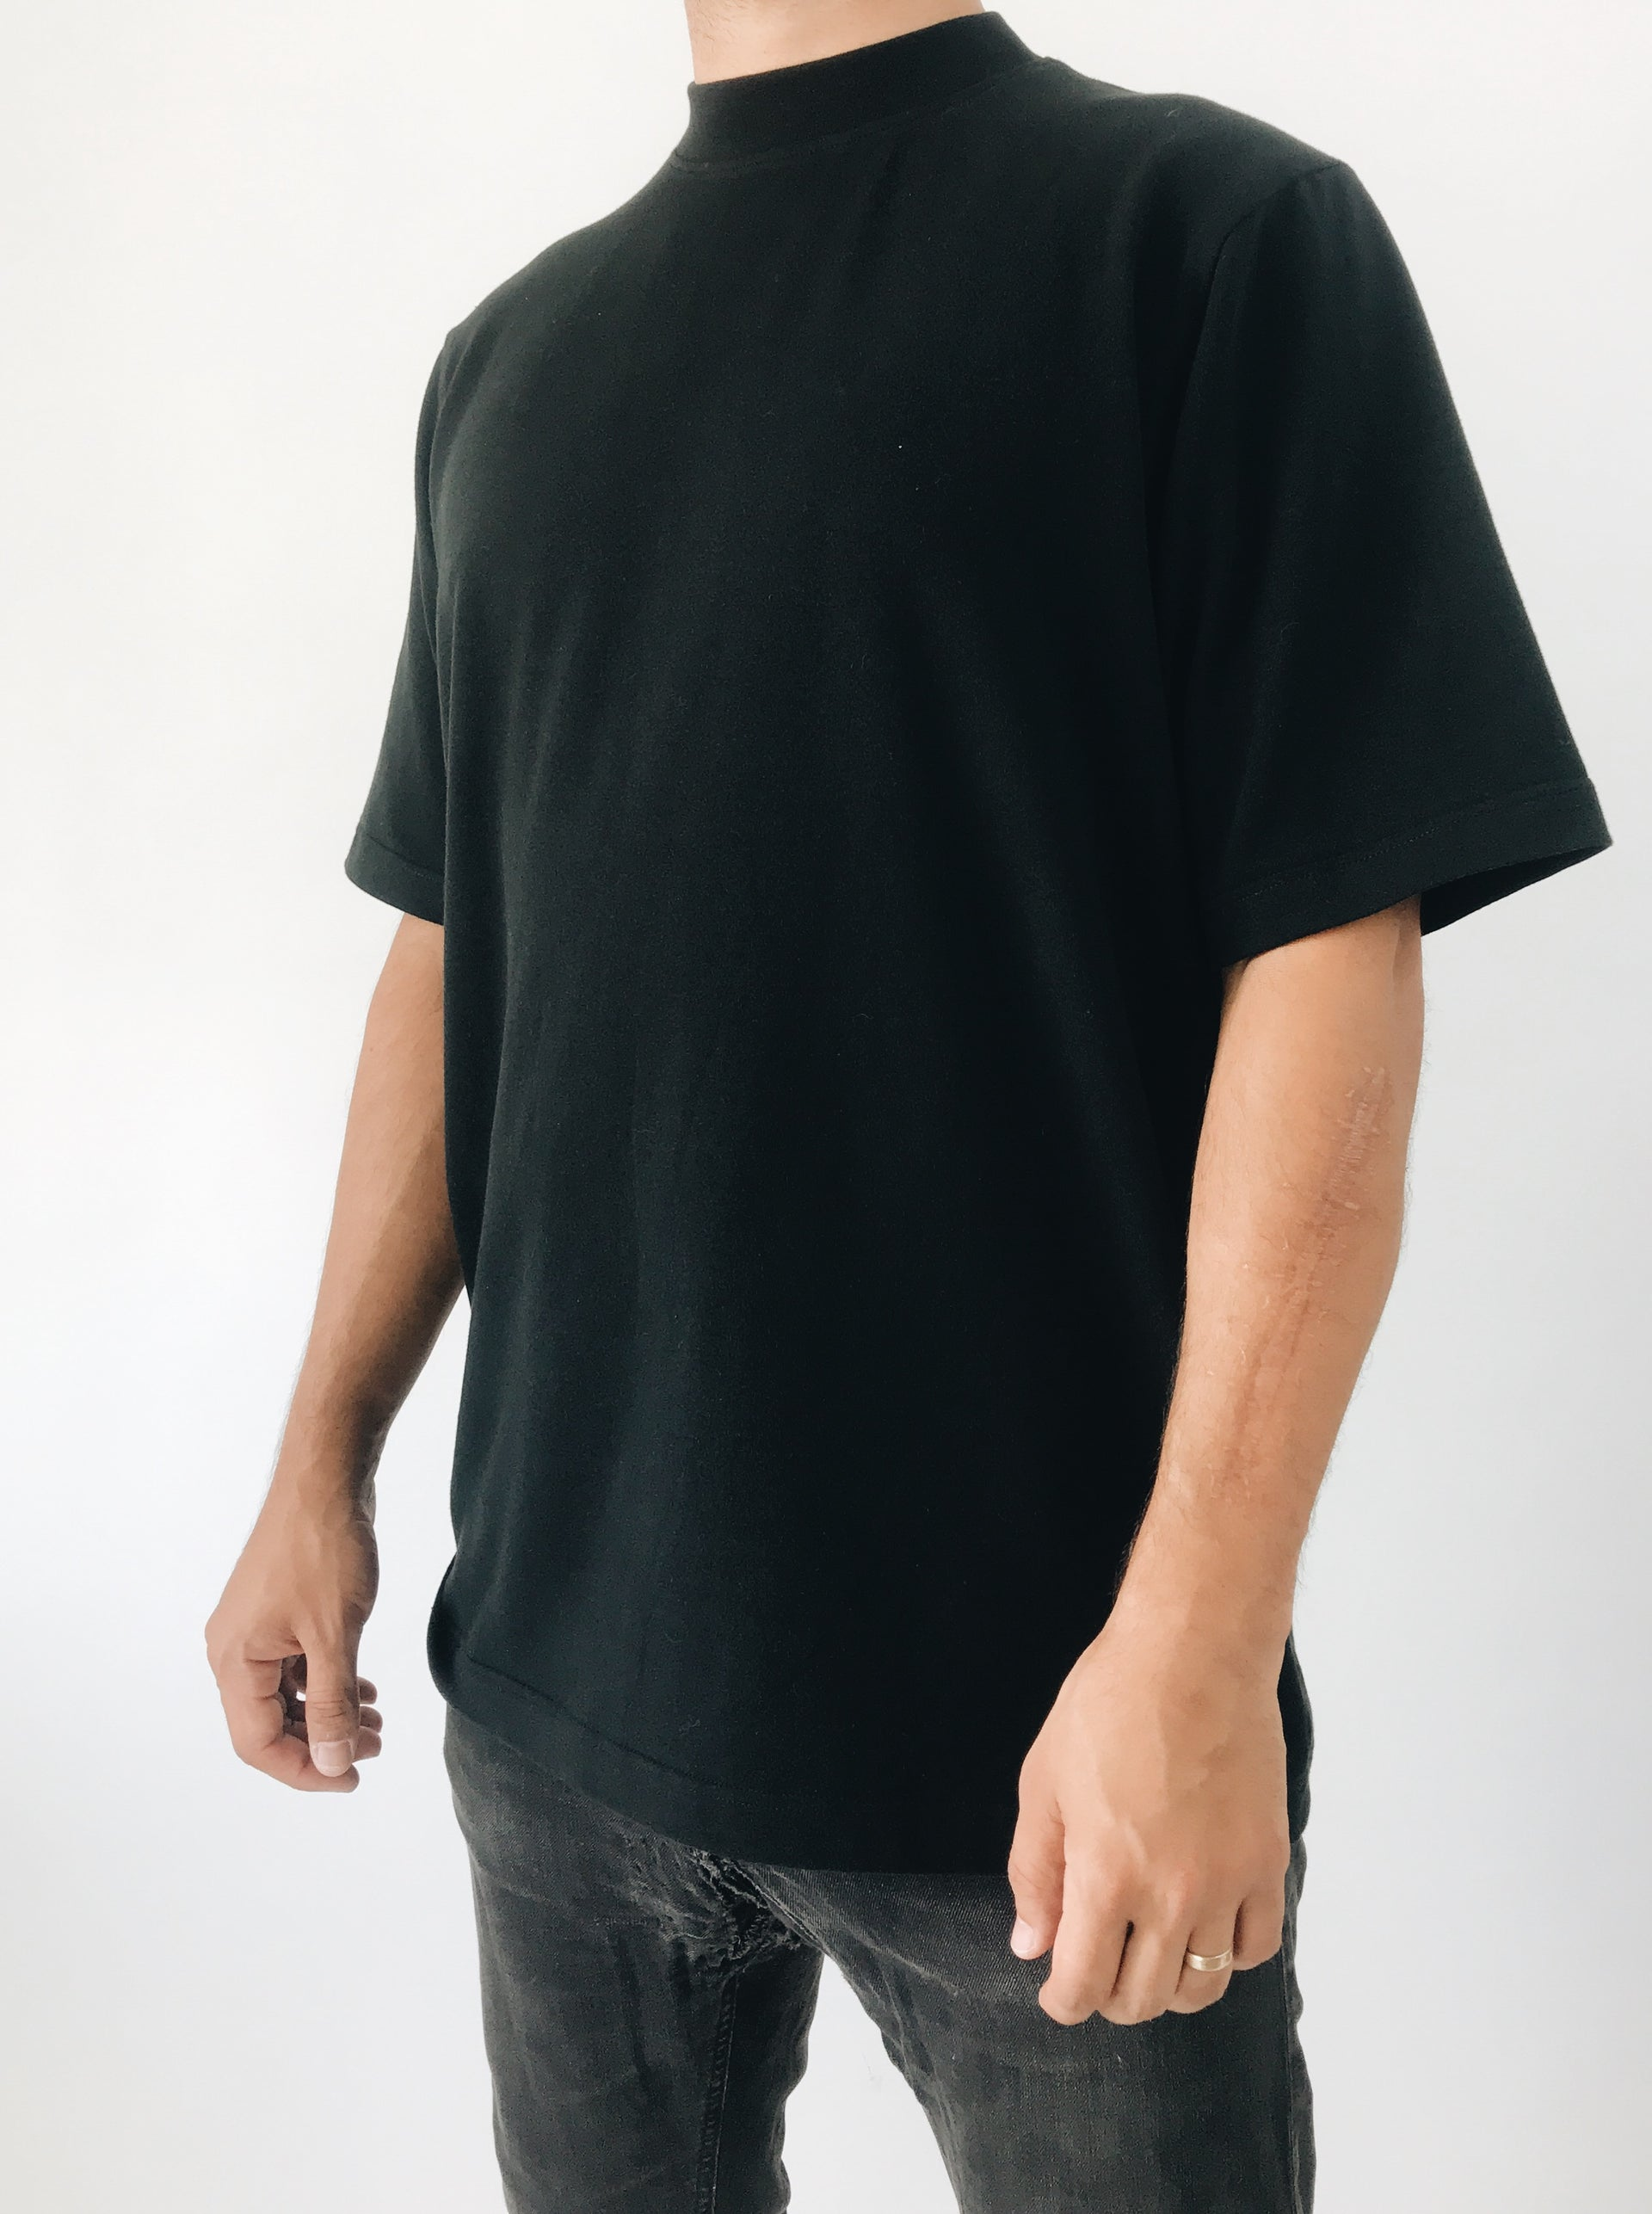 black tee shirt made with organic cotton portland oregon